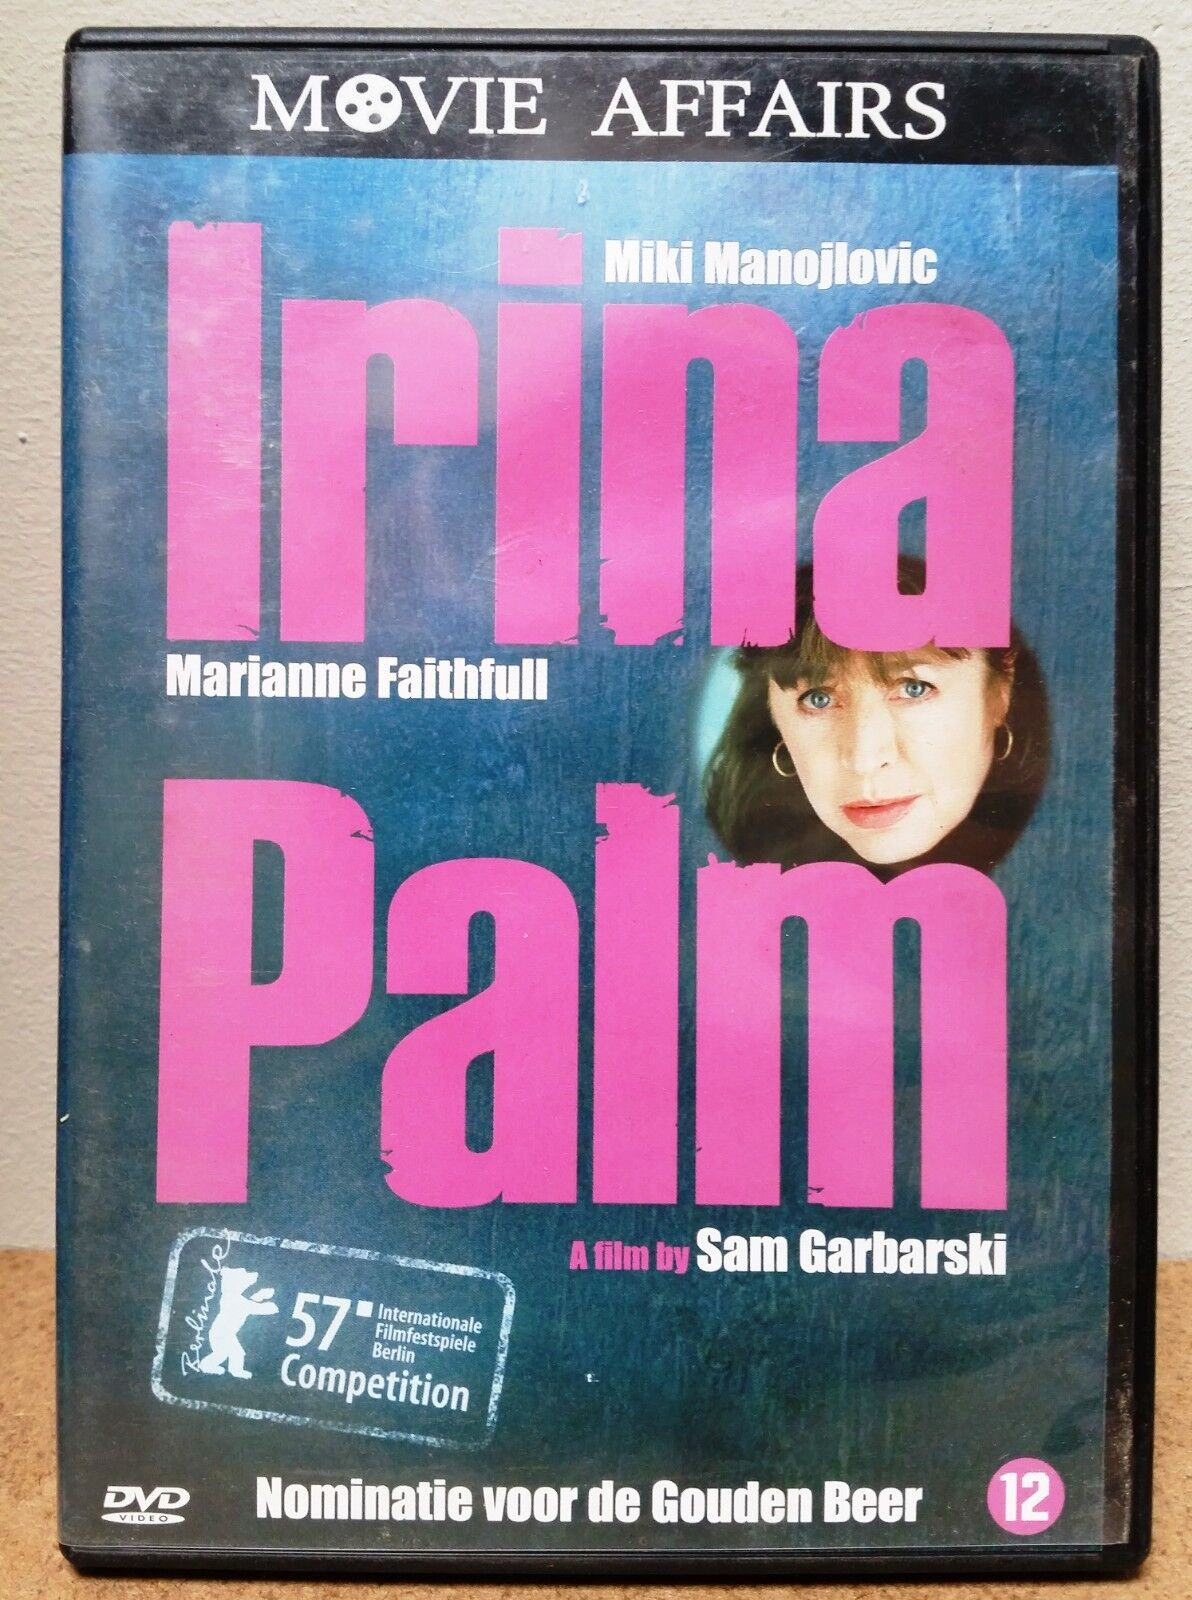 Irina Palm (2007) Marianne Faithful – Predrag 'Miki' Manojlovic